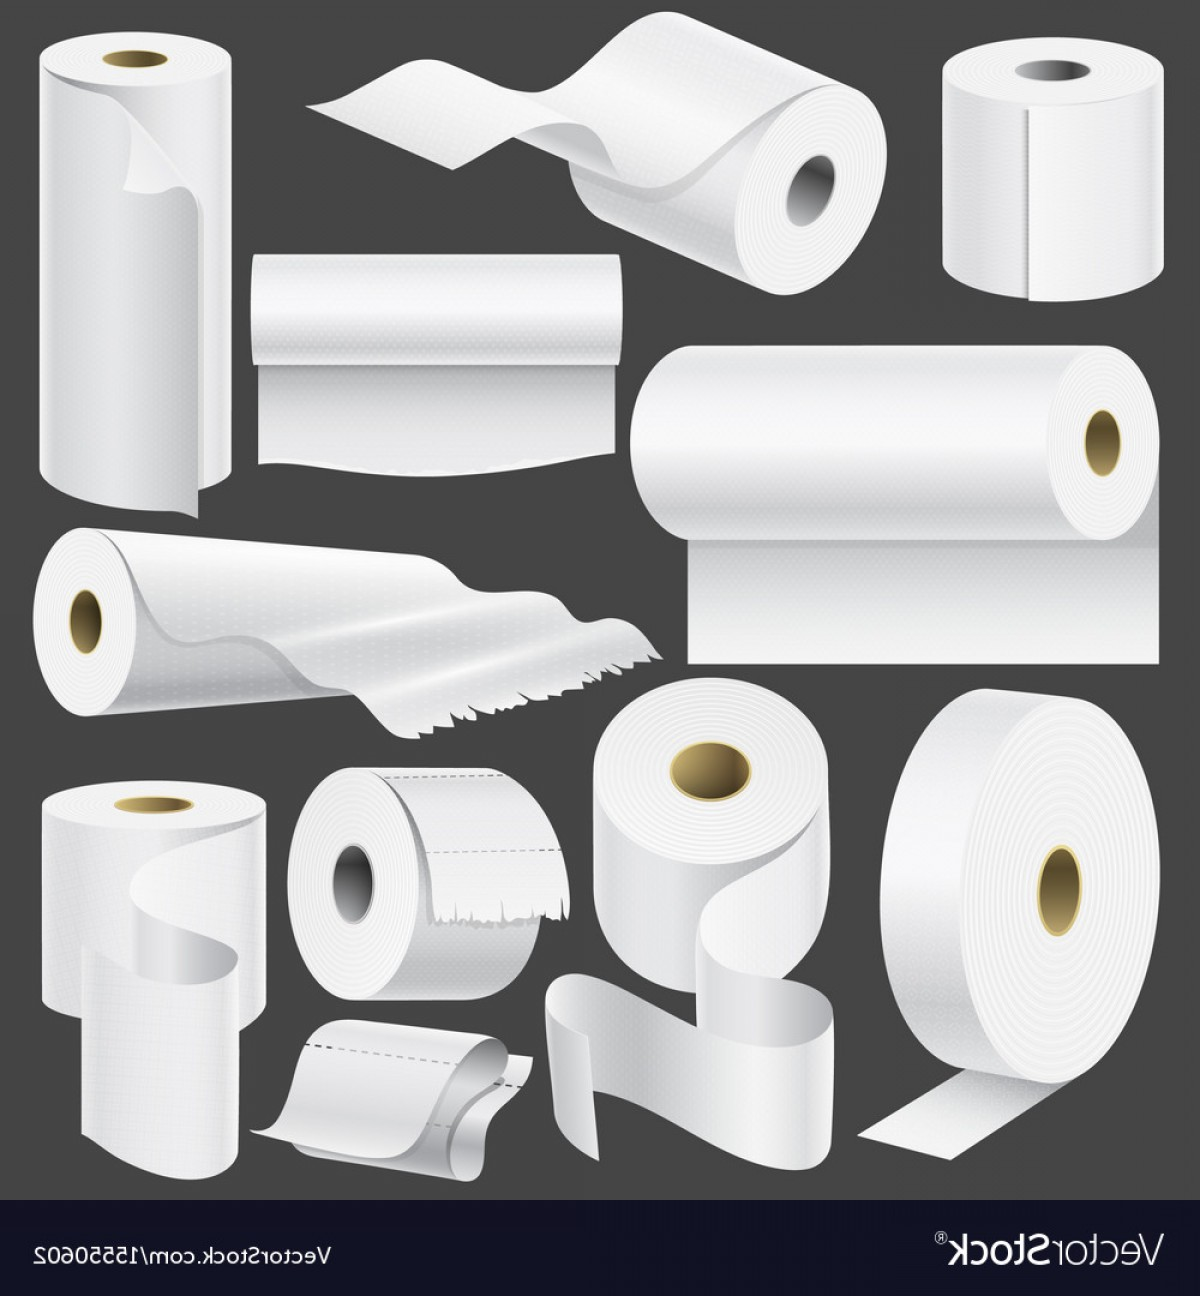 Toilet Paper Vector: Realistic Toilet Paper Roll And Kitchen Towel Vector